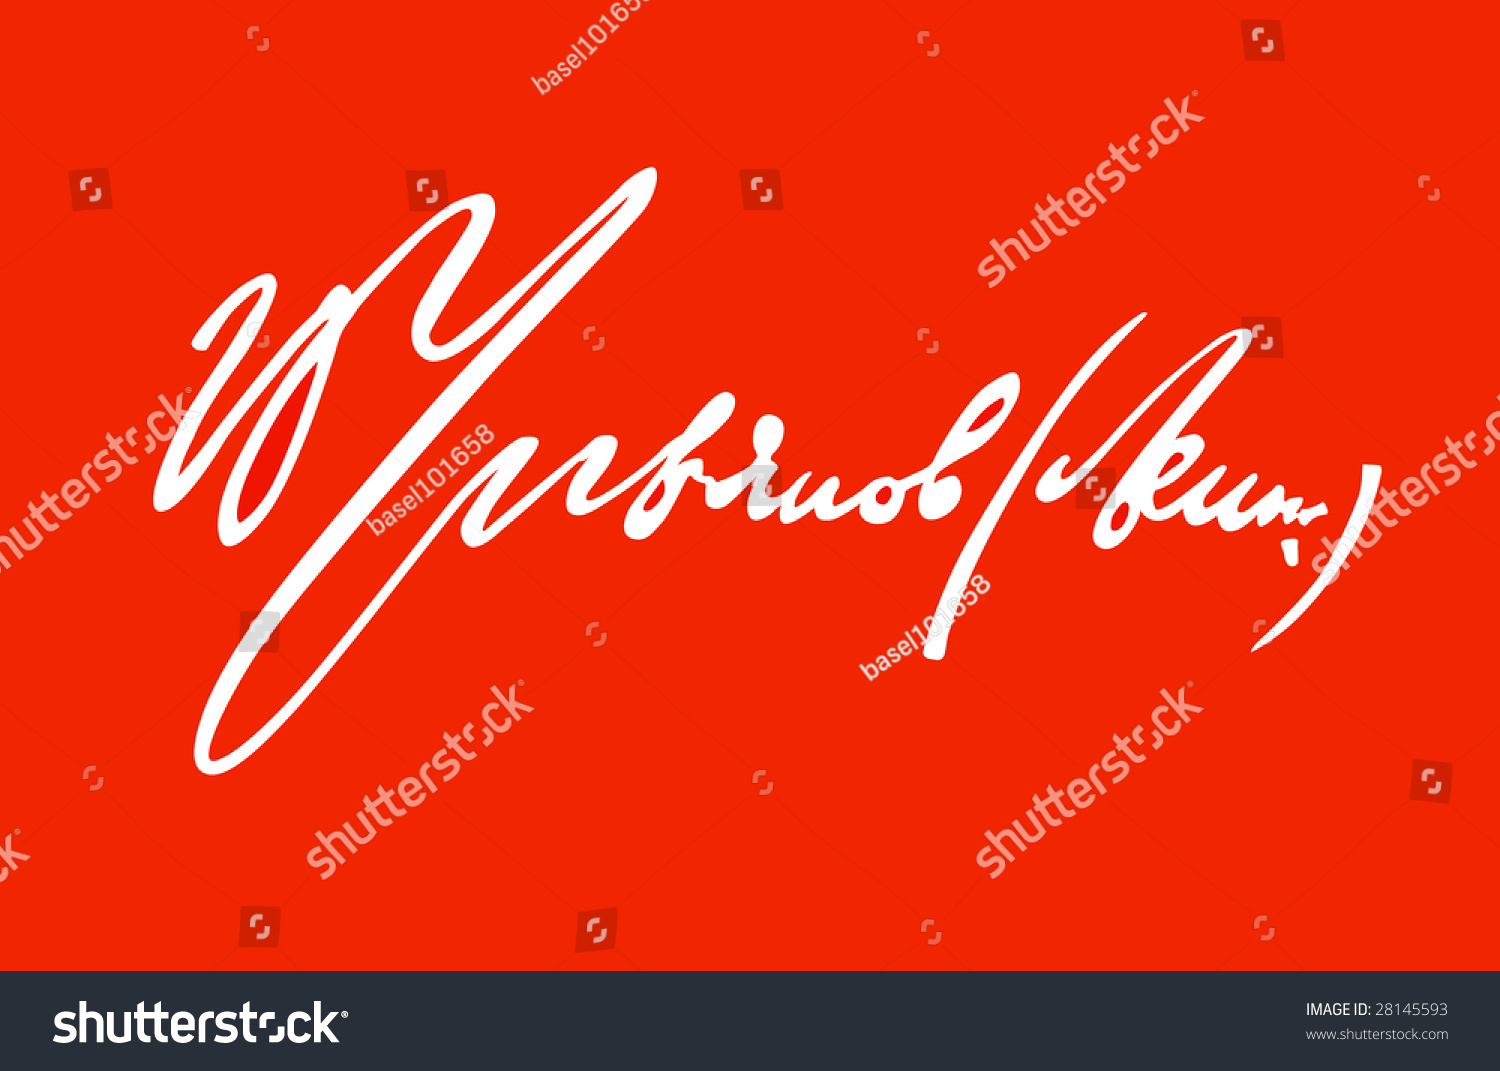 Signature Lenin On Red Background Vector Stock Illustration 1500x1071